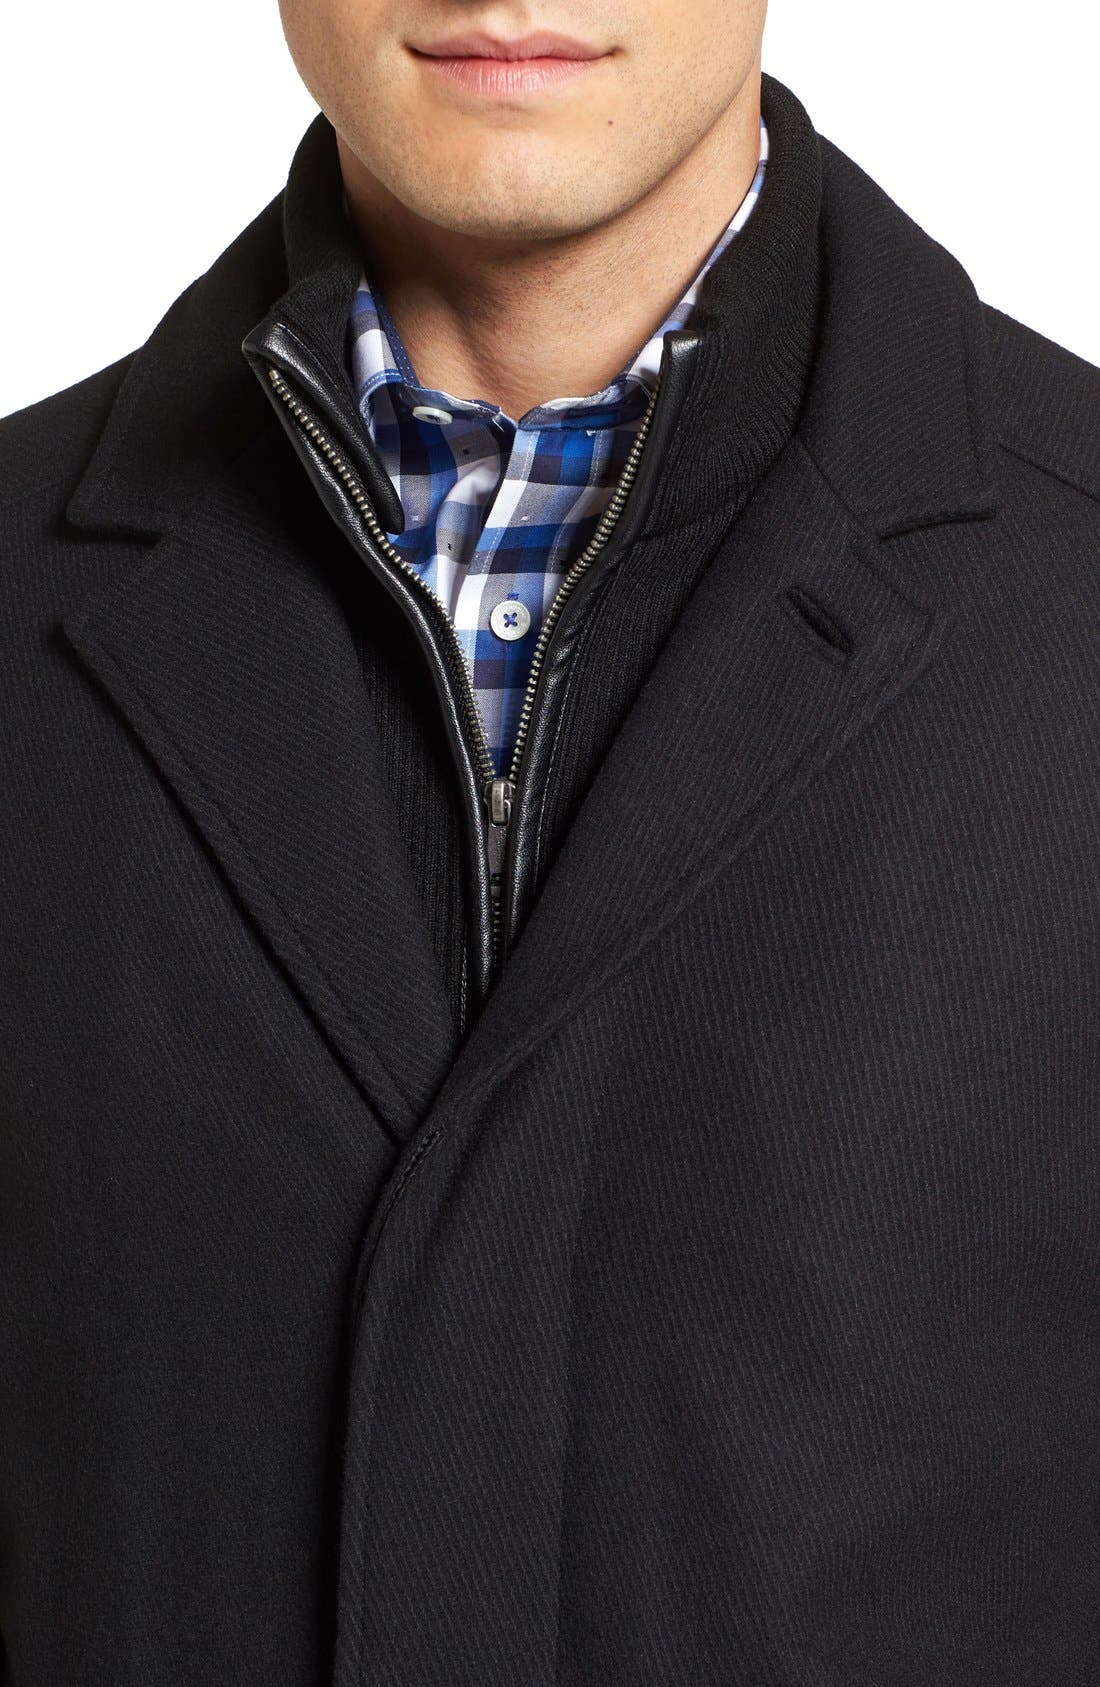 Alternate Image 4  - Cole Haan Wool Blend Overcoat with Knit Bib Inset